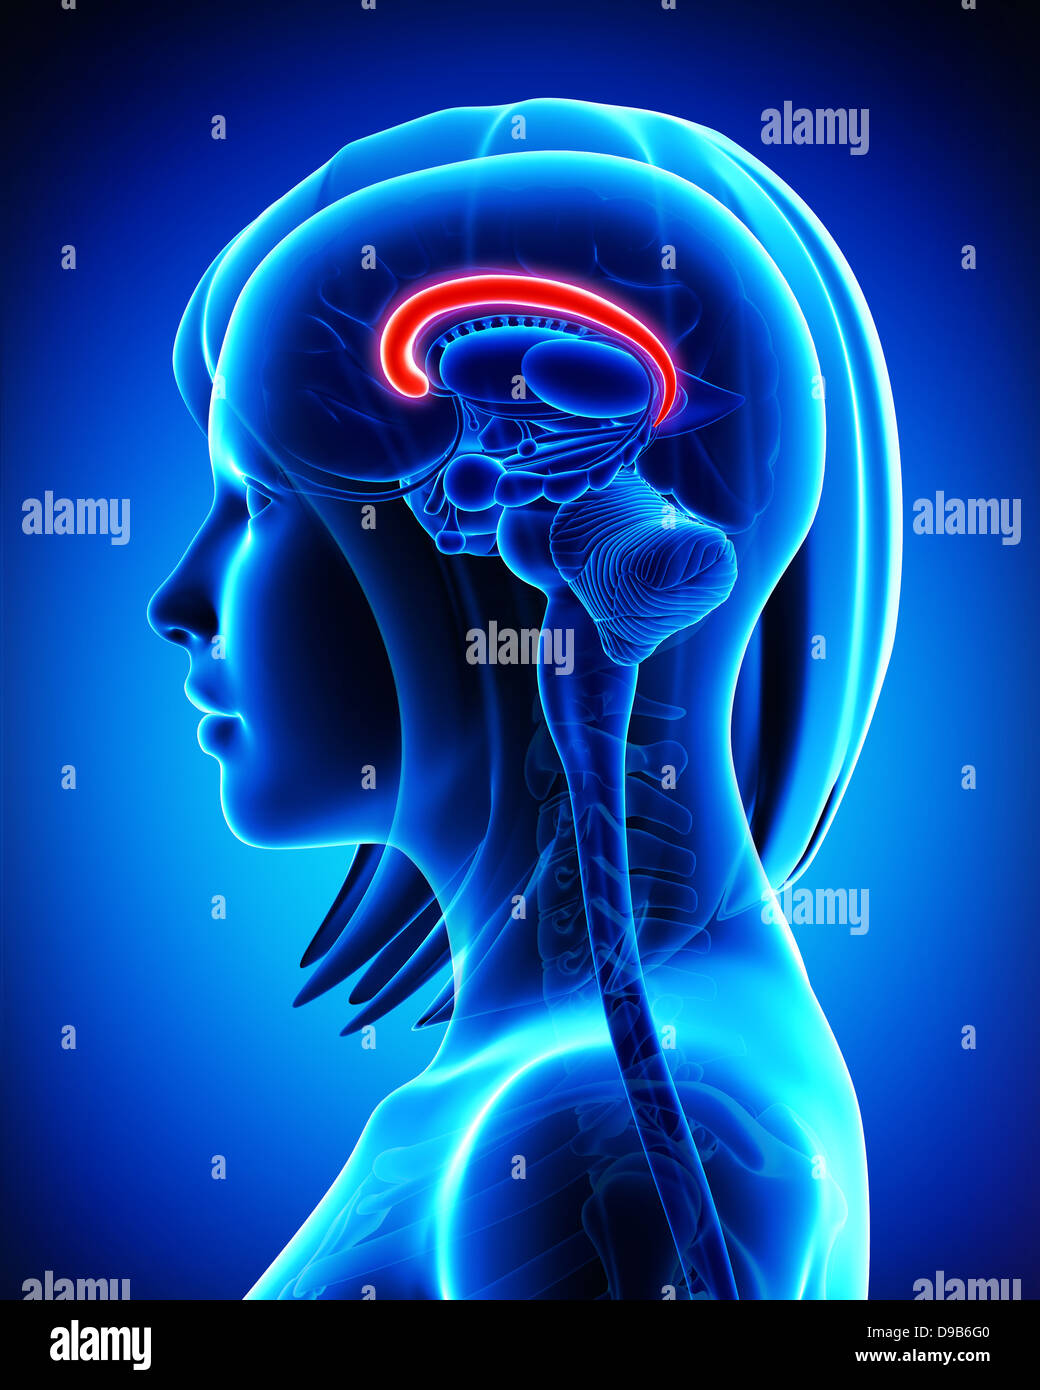 Anatomie du cerveau en coupe- gyrus cingulaire Photo Stock